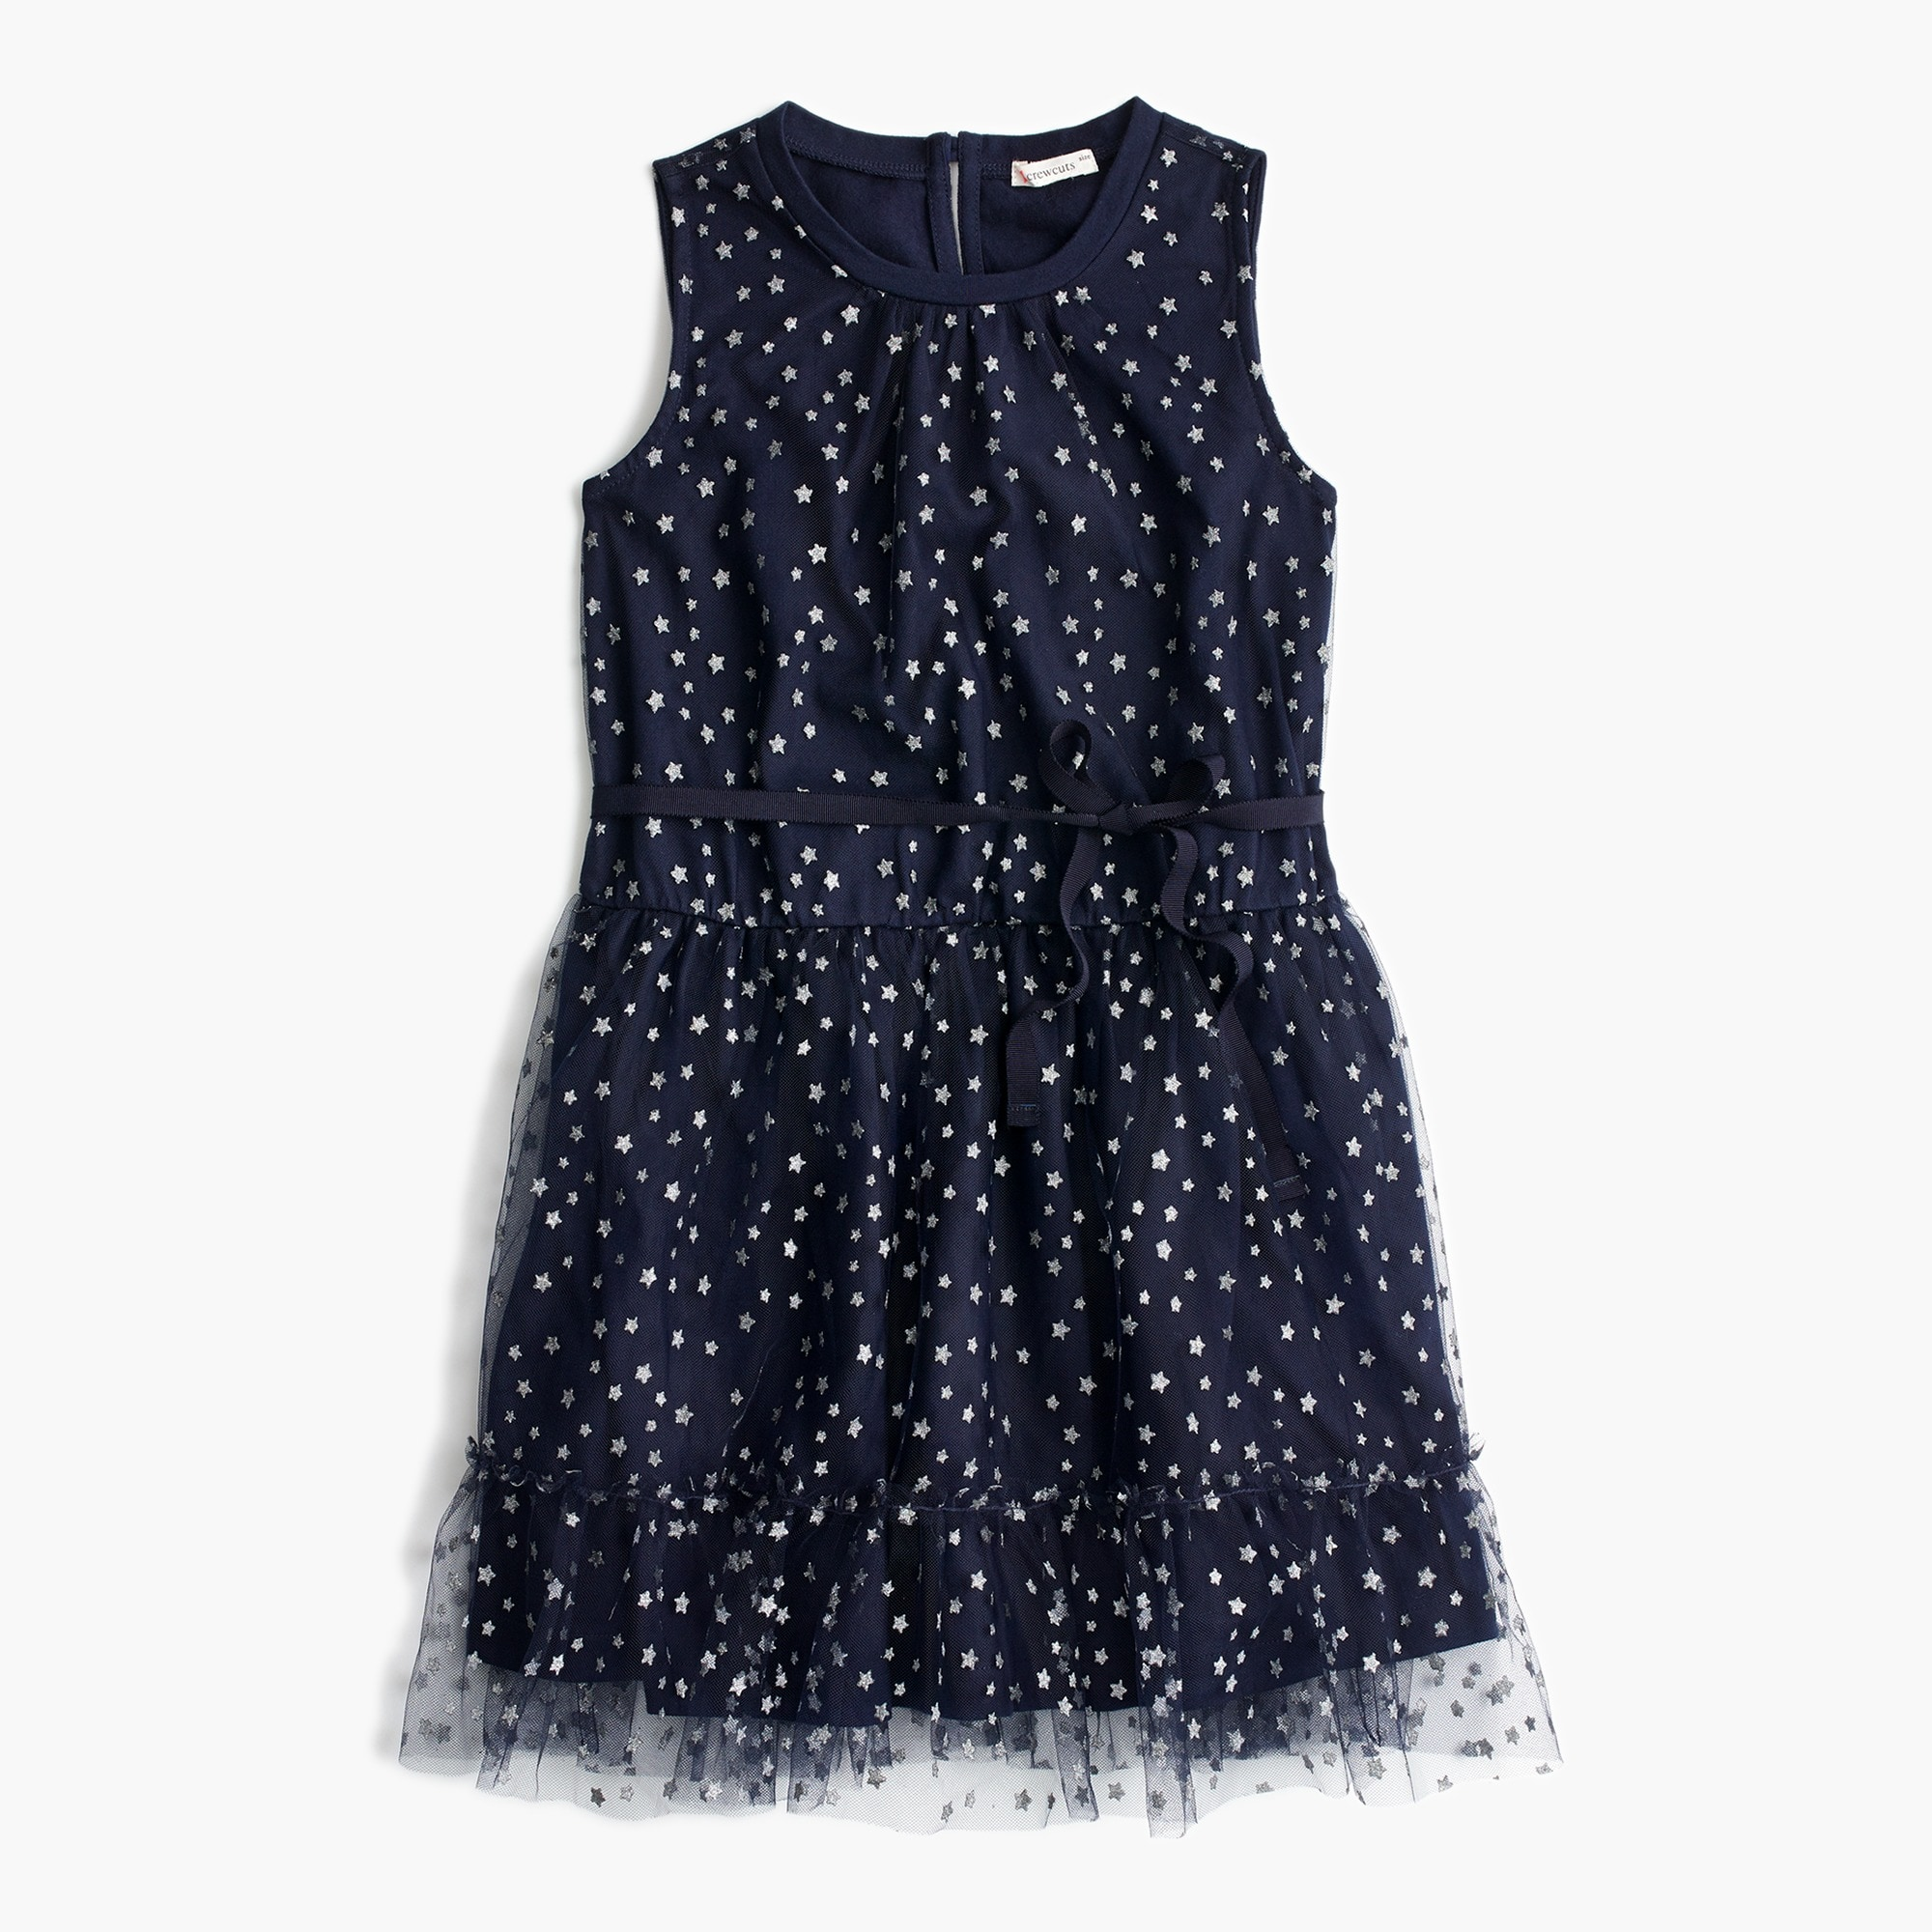 Girls' tulle dress in star print